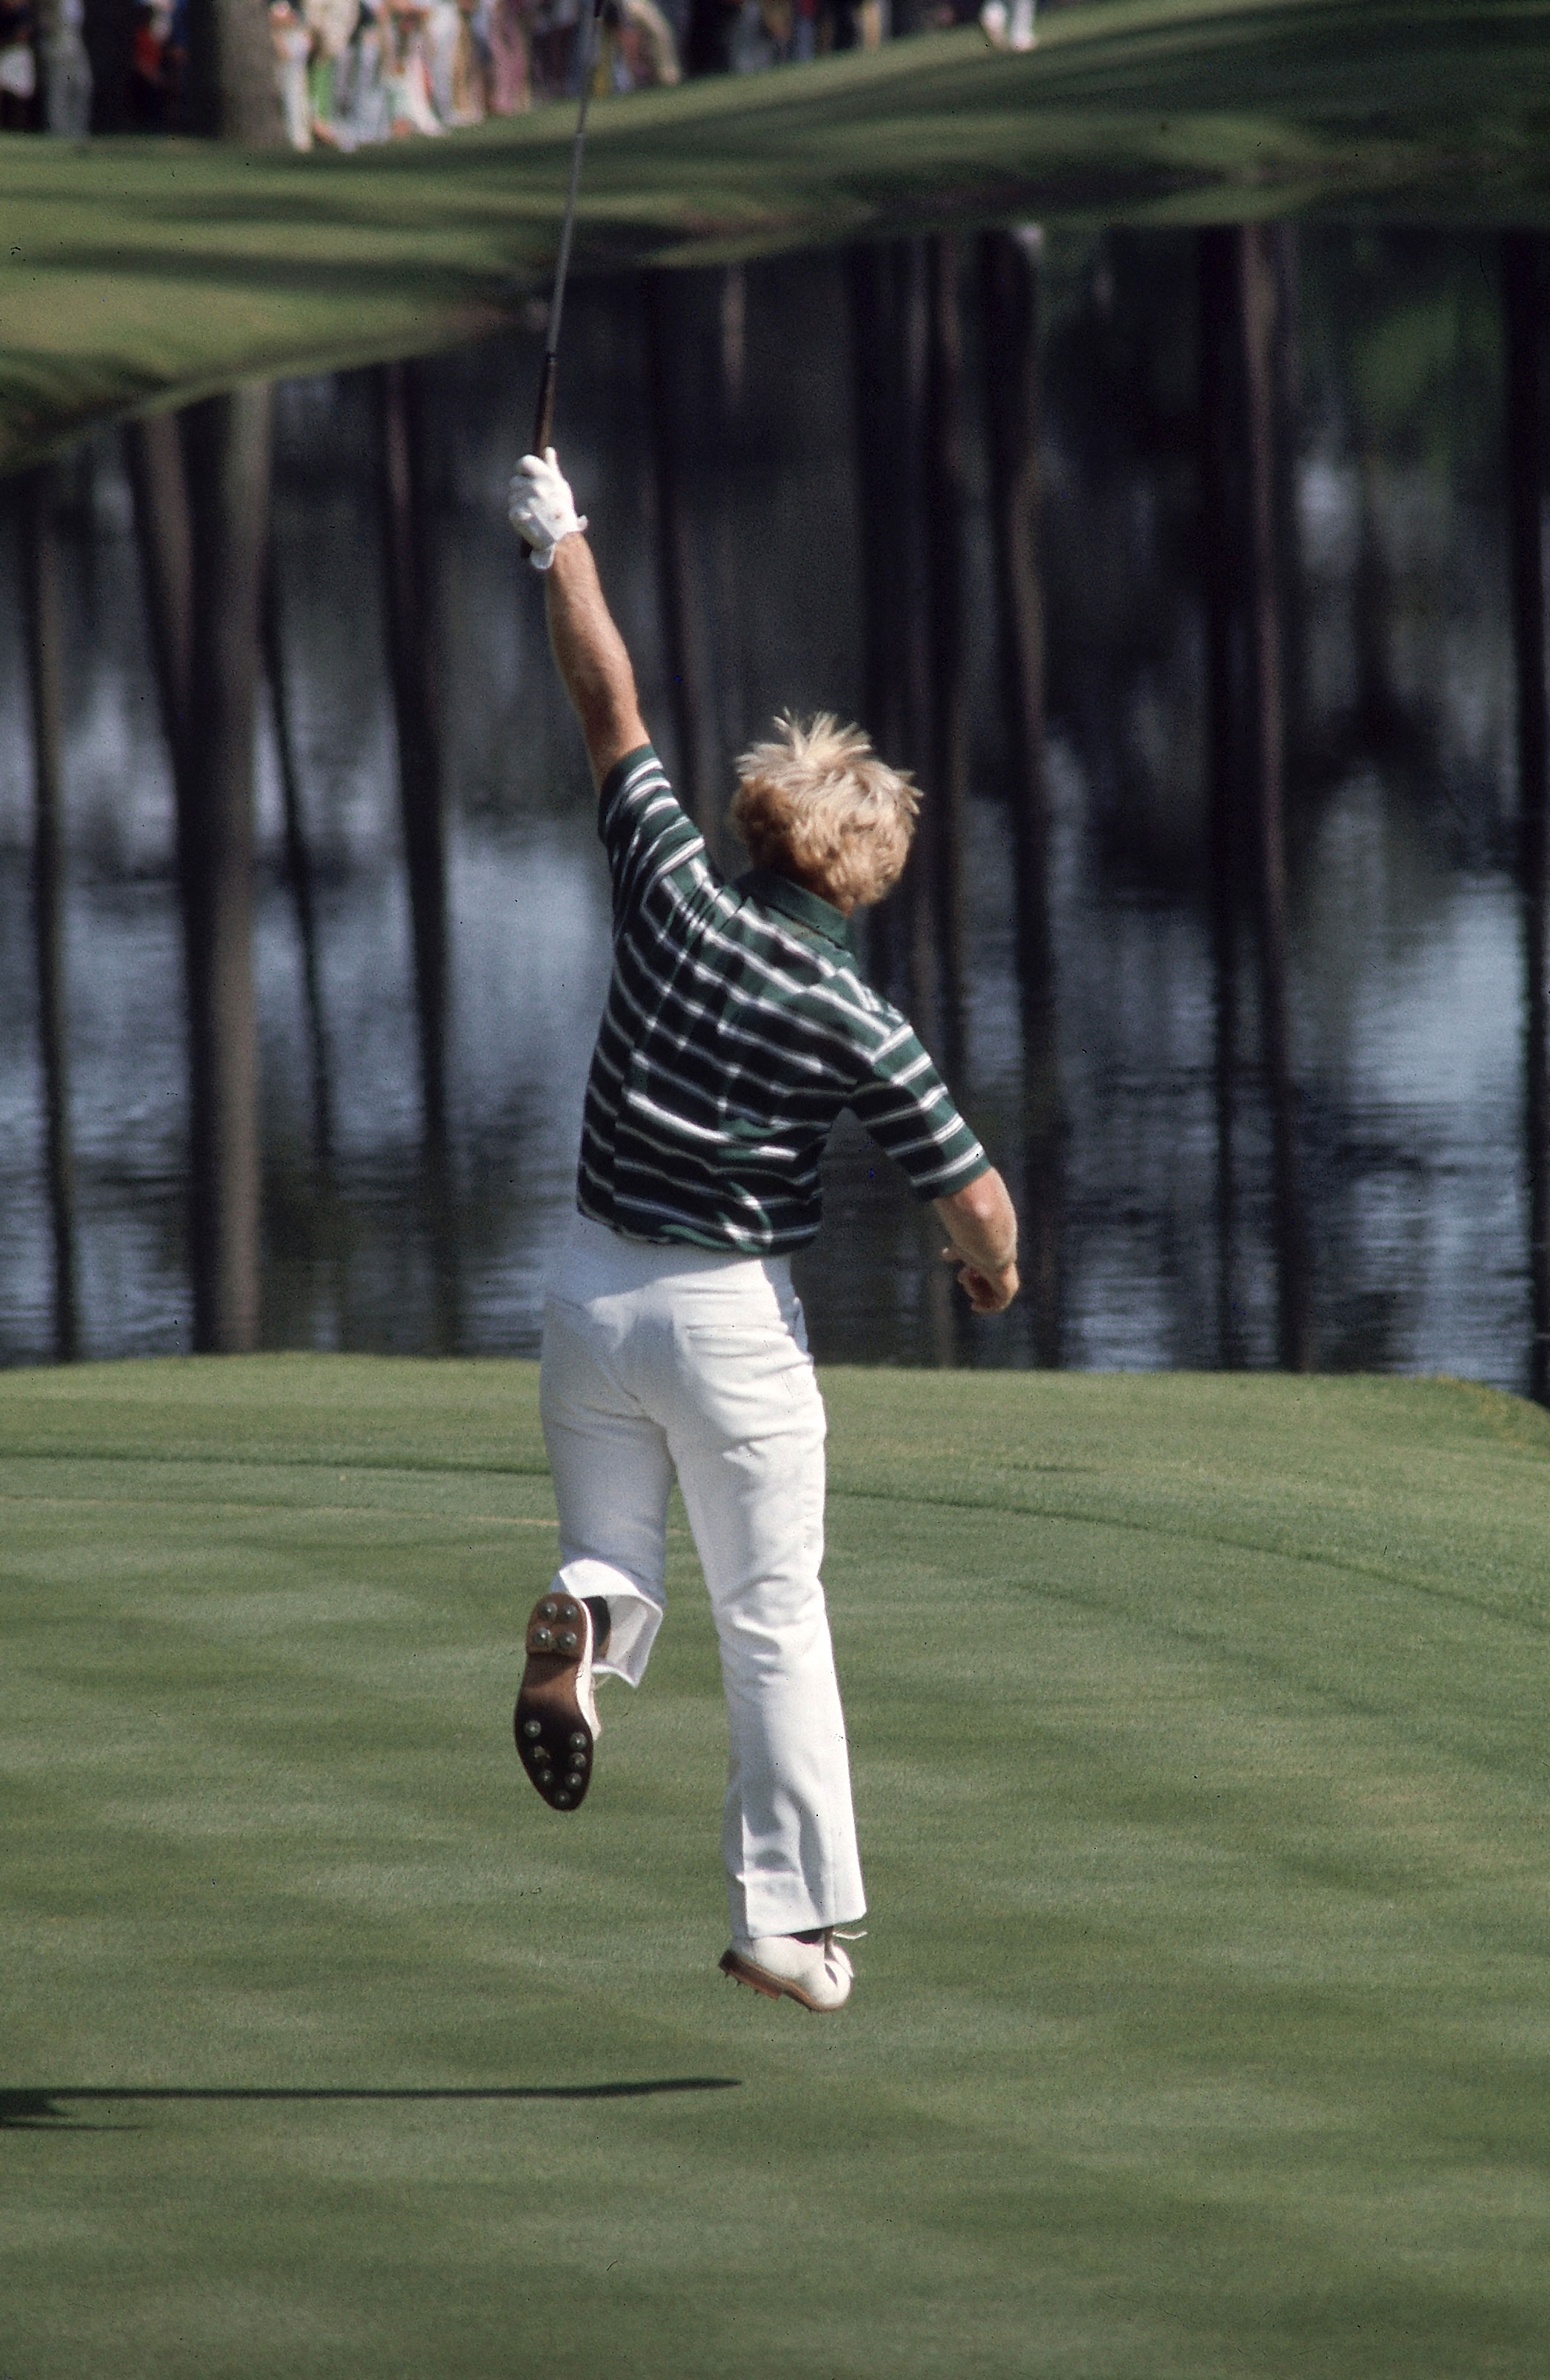 Jack Nicklaus - 1975                            The Golden Bear takes to the air after rolling in a 40-foot putt for birdie at 16 on Sunday. The putt ties Jack with Tom Weiskopf, who watches from the 16th tee as Nicklaus makes his putt. Weiskopf bogies the hole and Nicklaus finishes with two pars to secure his fifth green jacket.